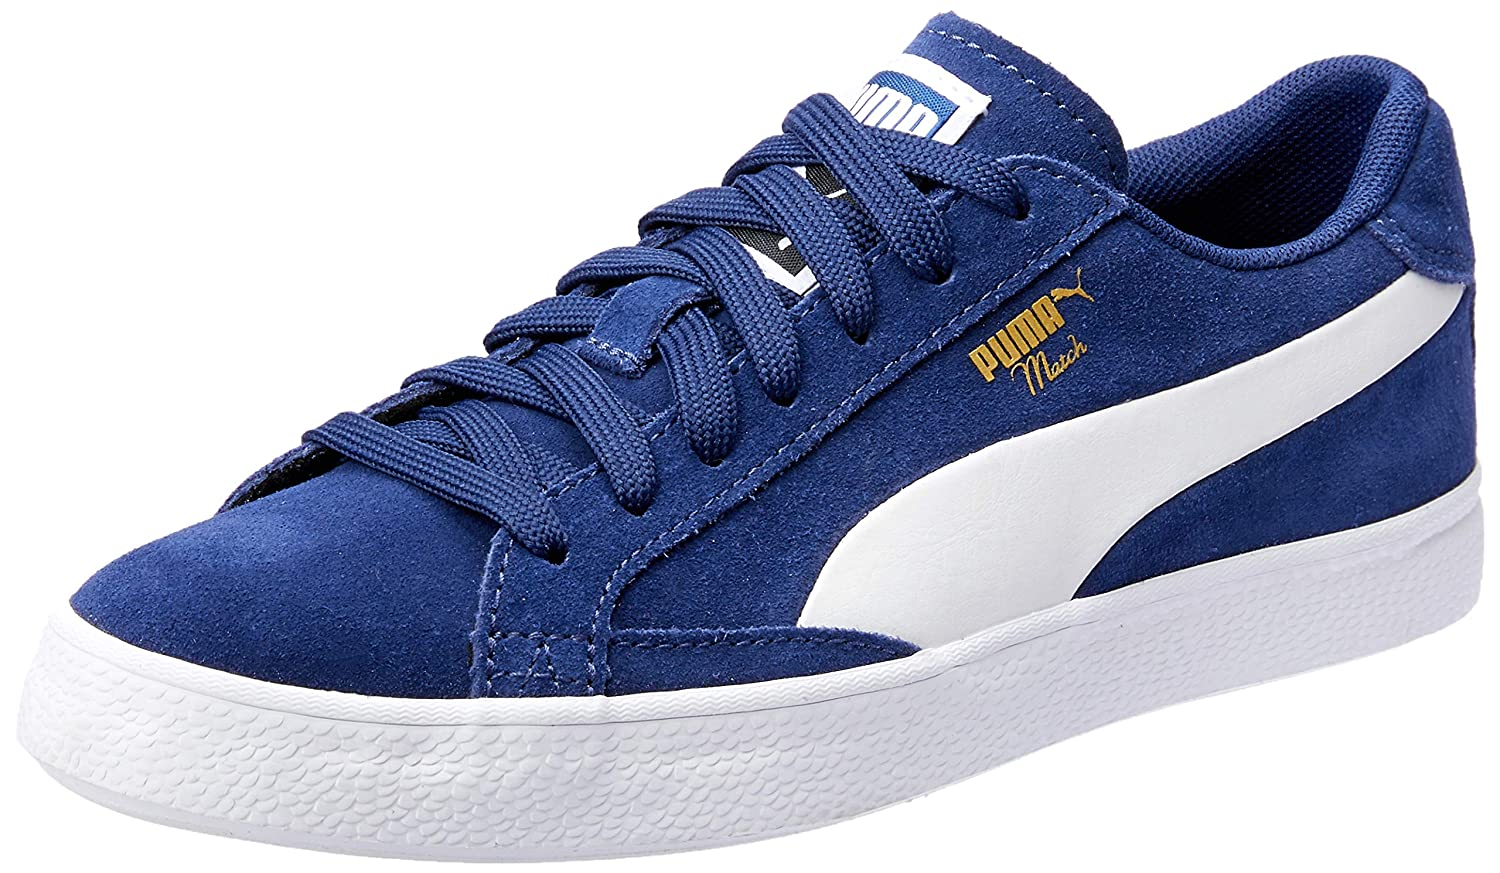 d1299cefff70b4 Puma Unisex Match Vulc 2 Blue Sneakers - 11 UK India (46 EU)(36314407)  Buy  Online at Low Prices in India - Amazon.in